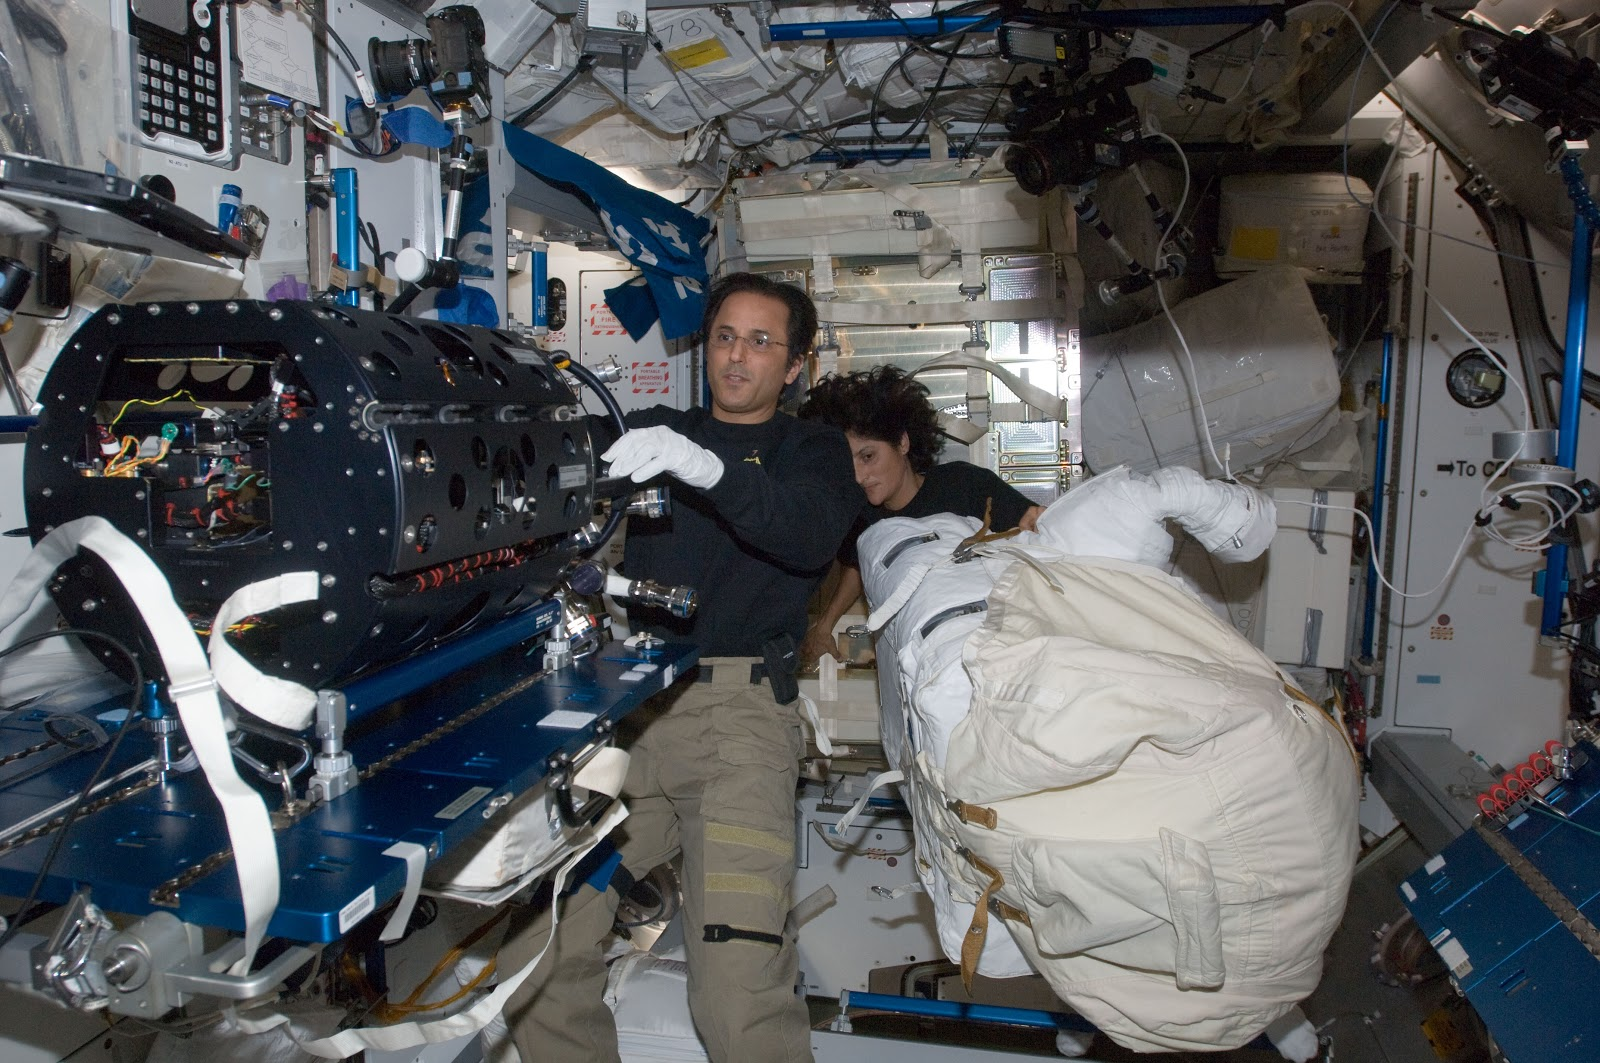 Iss Interior Best Of Great Suni Blog Spacepapermodels